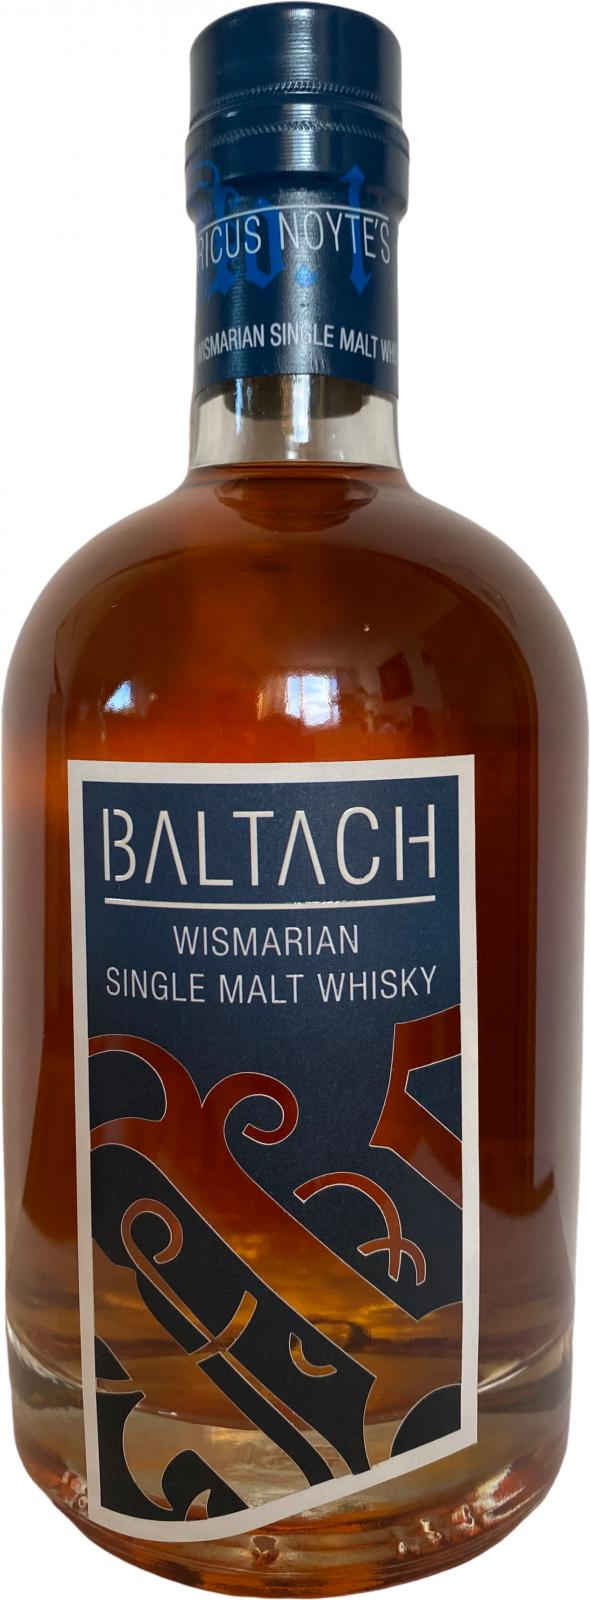 Baltach 04-year-old